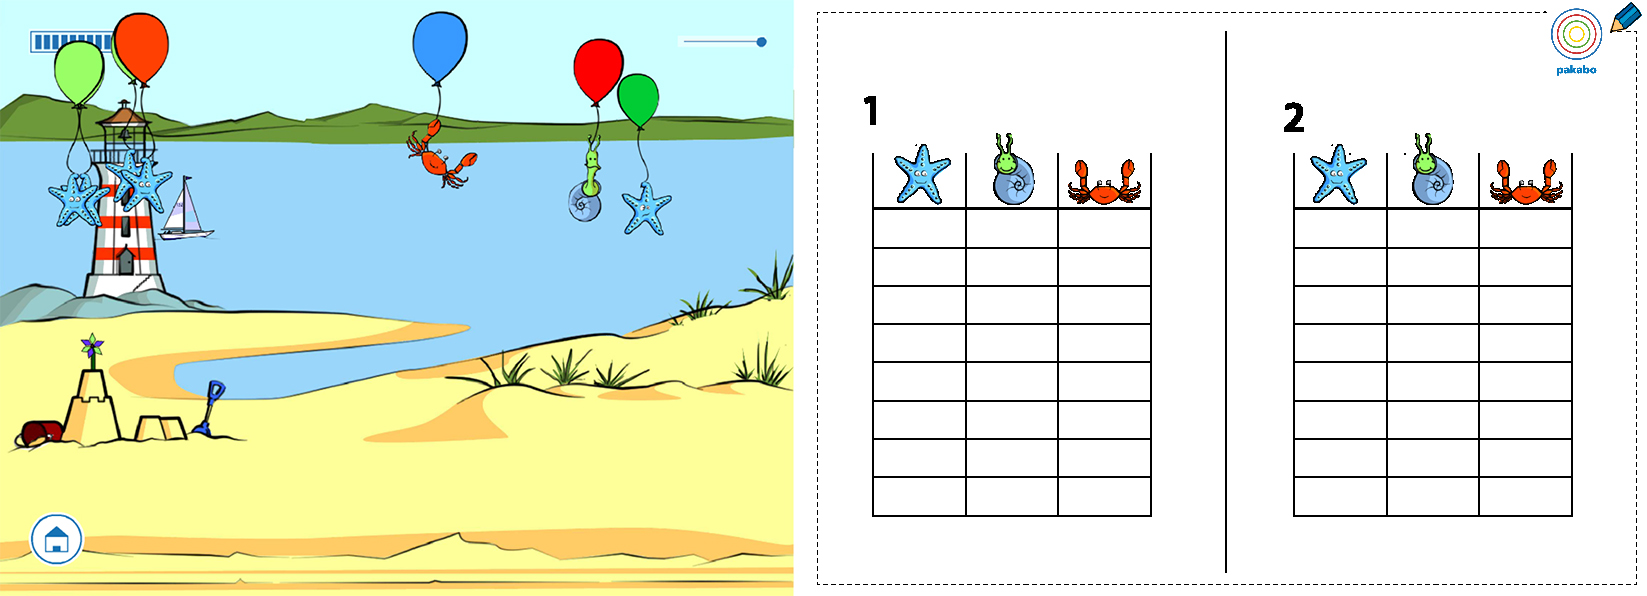 Table for the beach level.